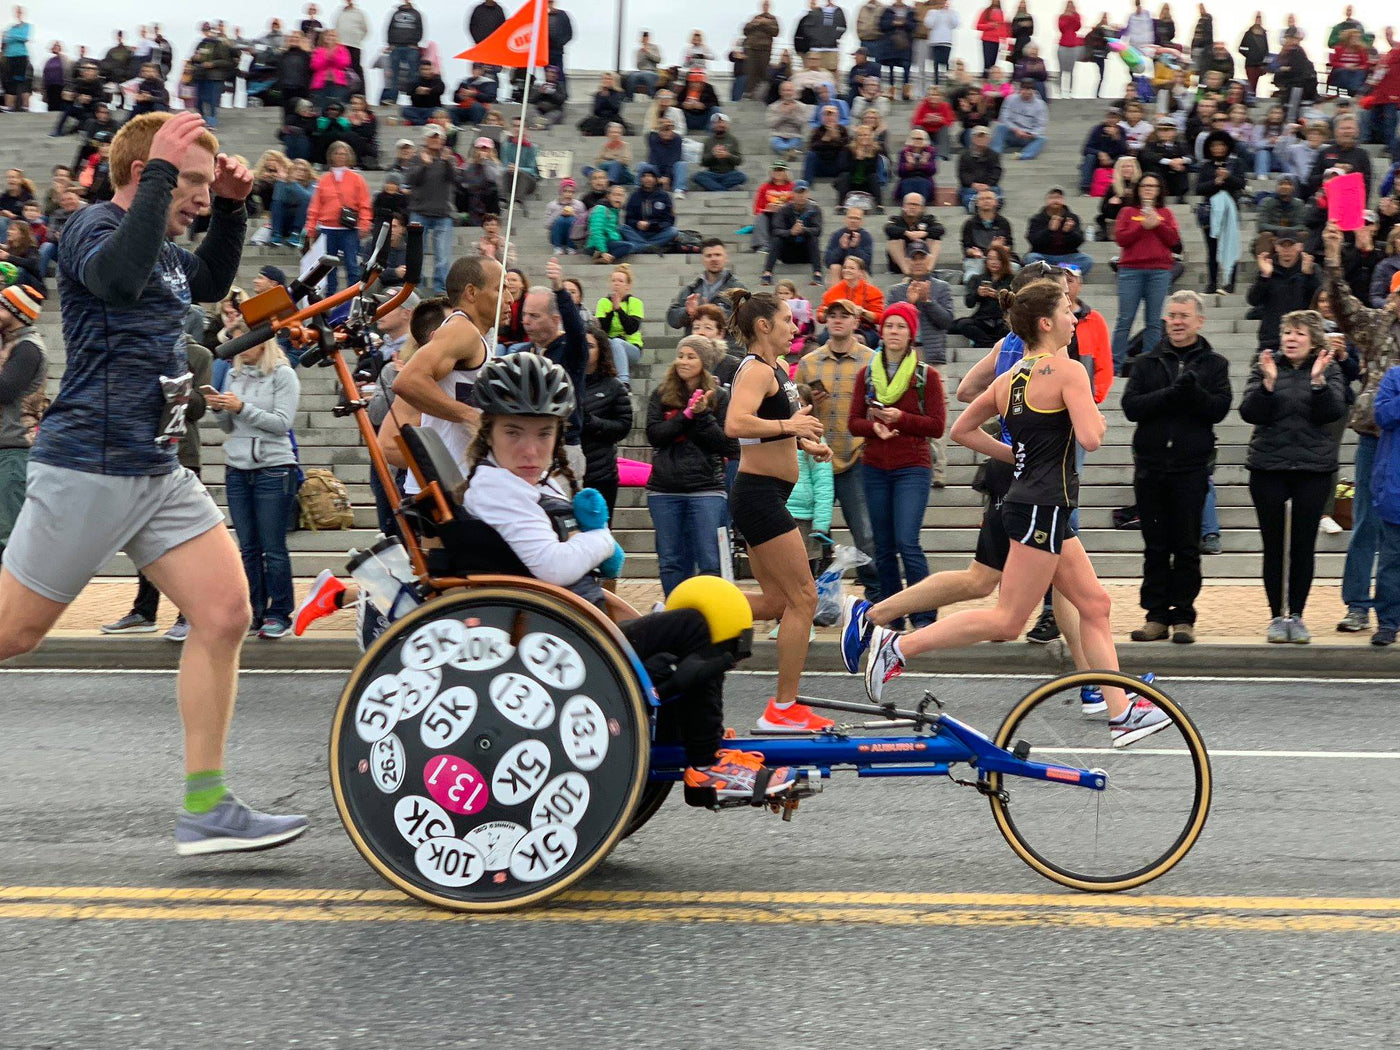 Young woman in racing chair with wheel covered in marathon stickers